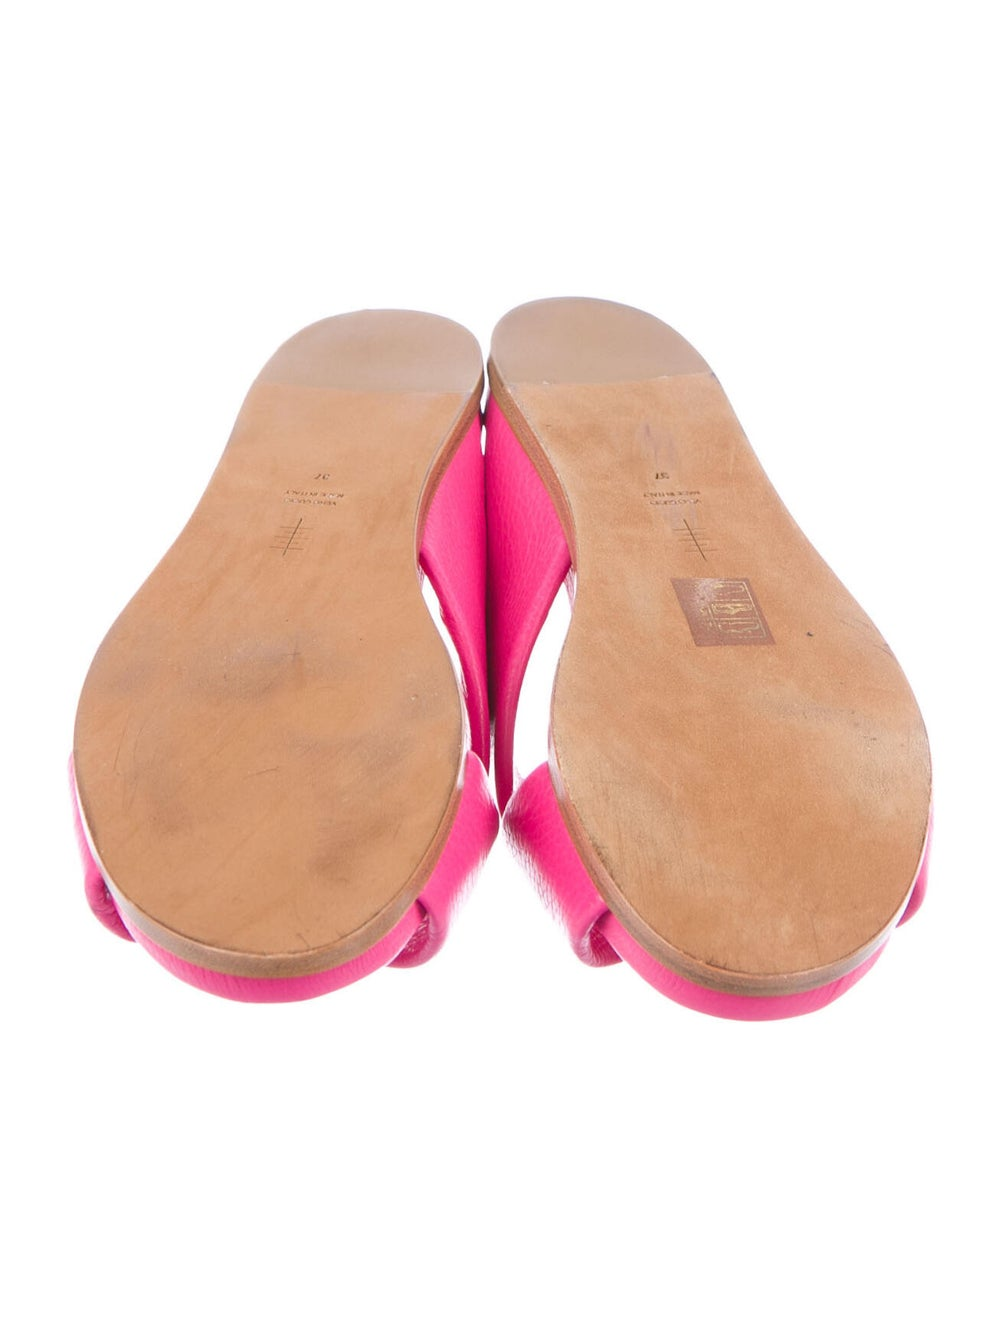 Alumnae Leather Slides Pink - image 5